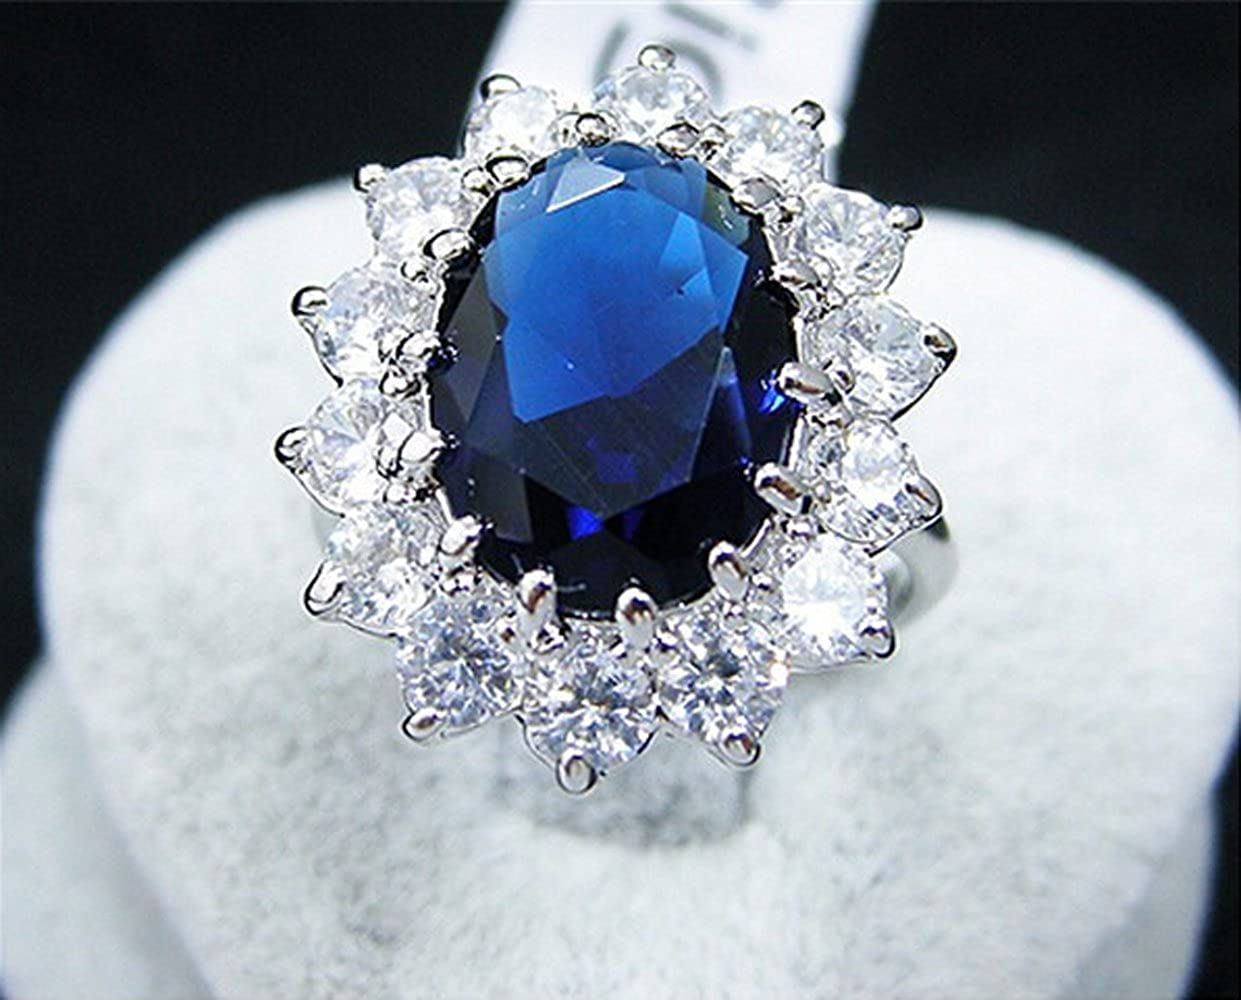 Adorable Woman Shappire Ring Costly Diamond Large import zircon Ring 515MzF2BlI8L